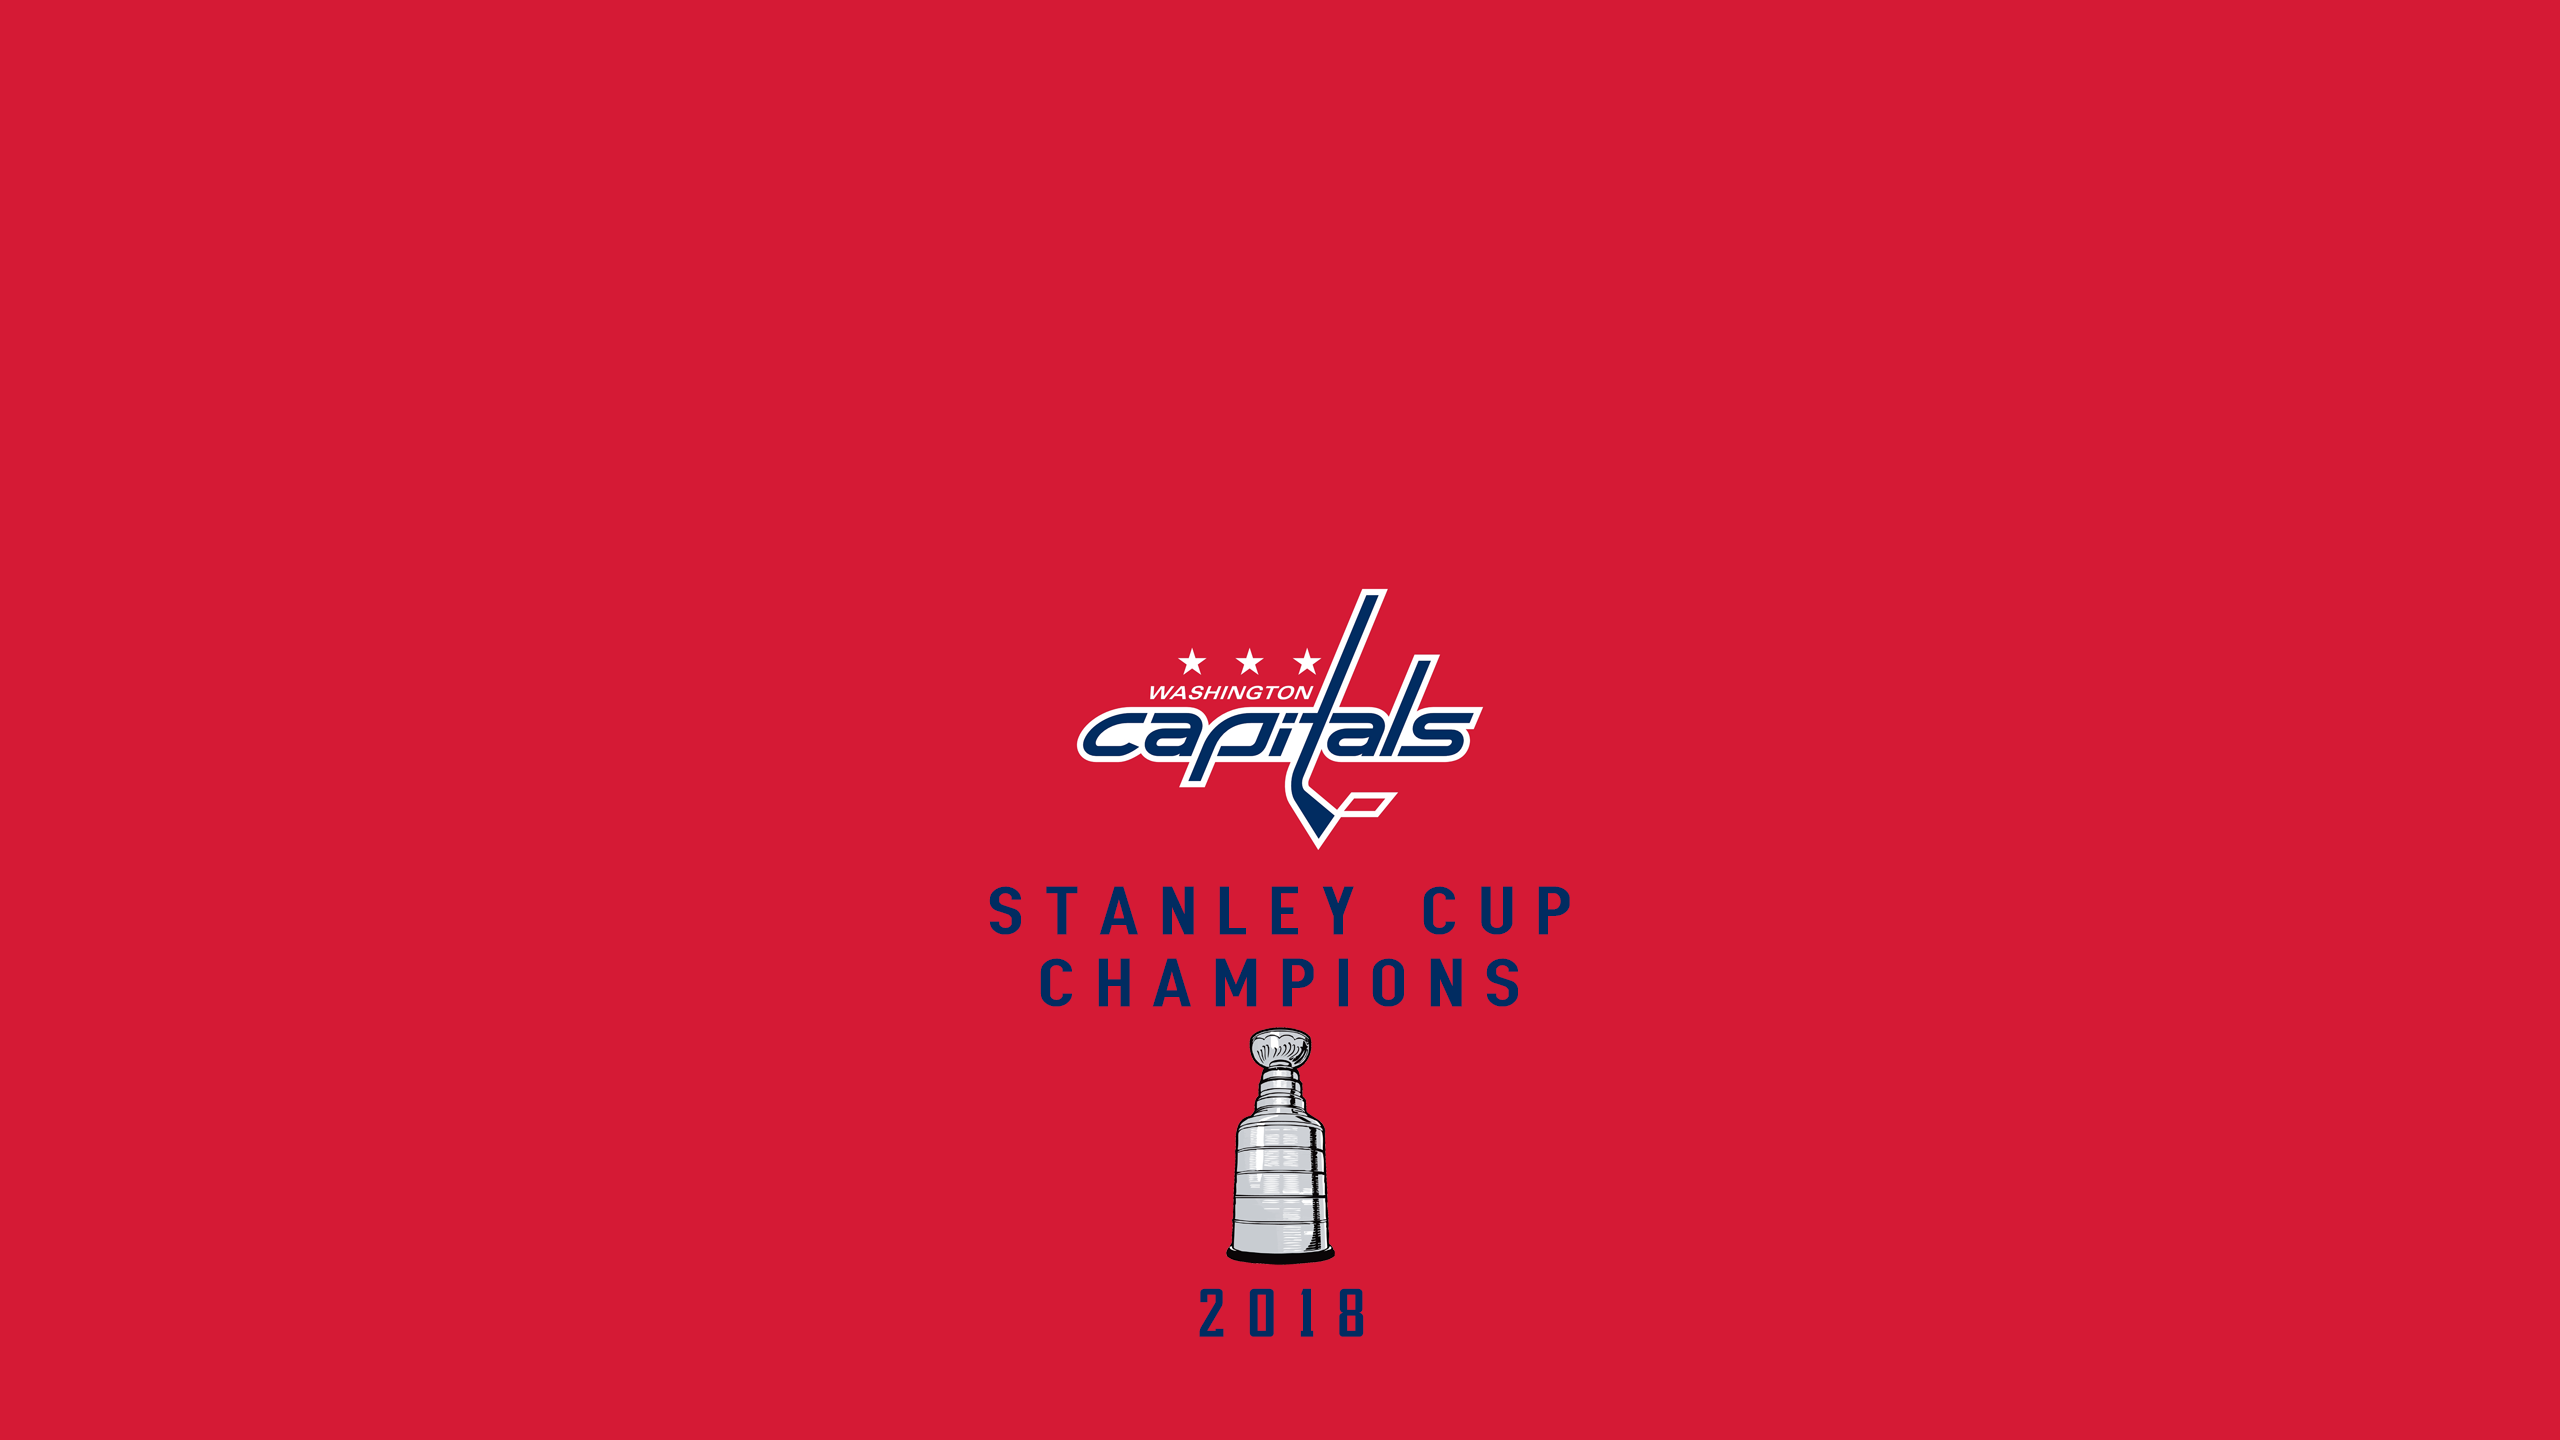 Washington Capitals - Stanley Cup